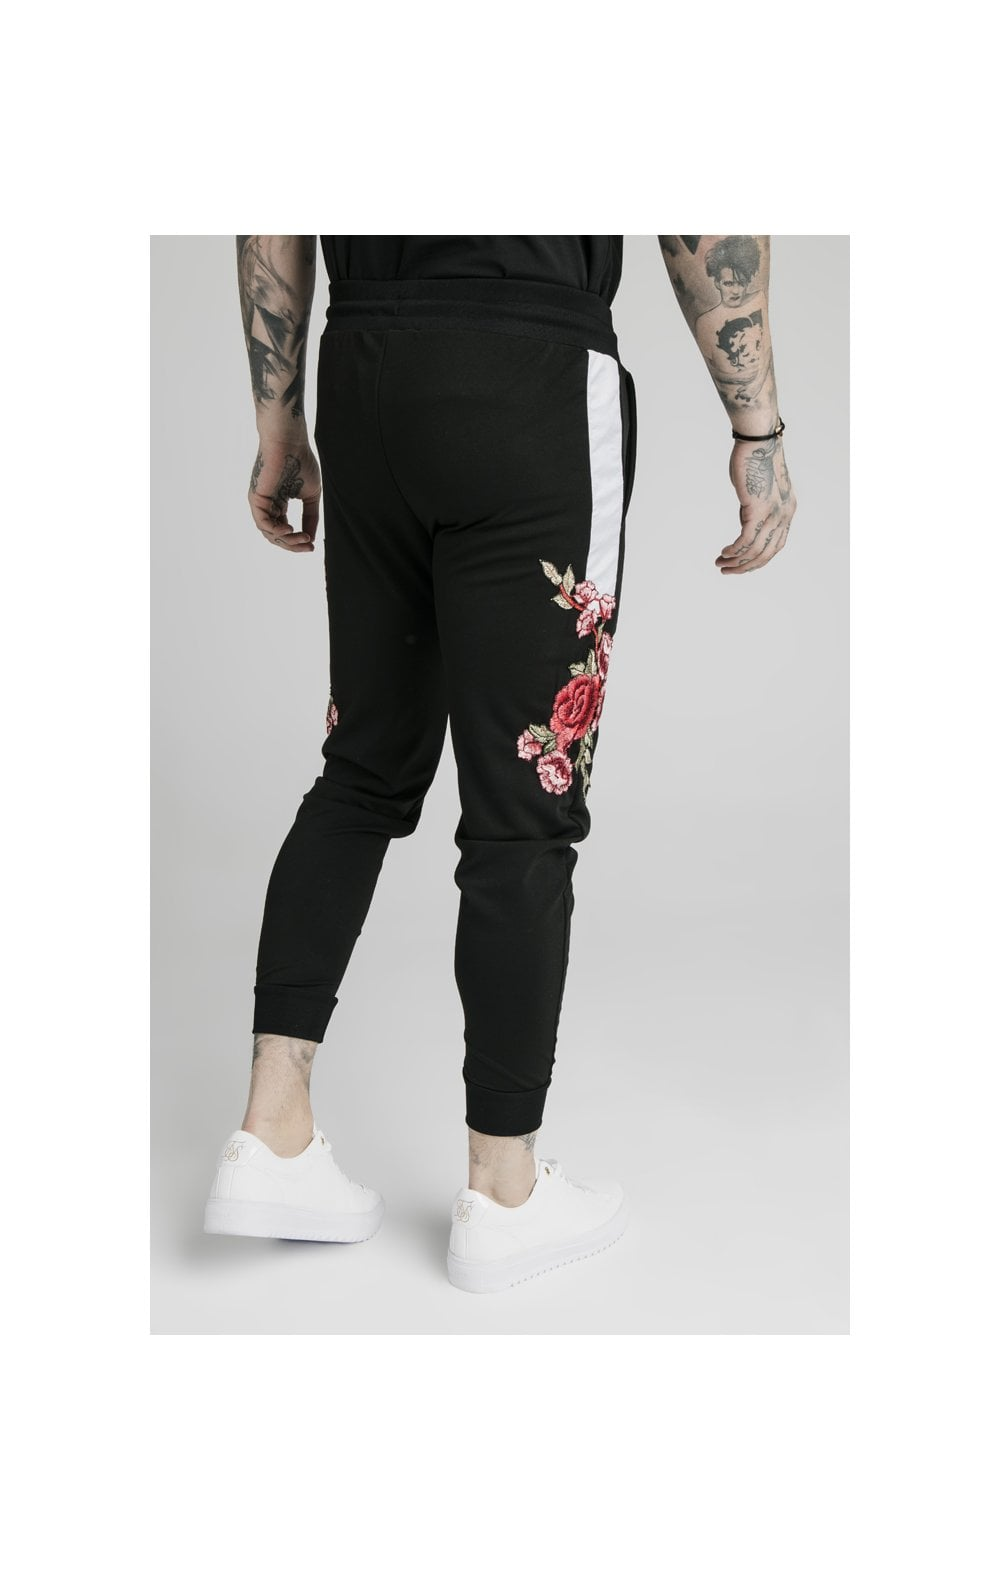 SikSilk Appliqu�� Panelled Fitted Joggers - Black (5)